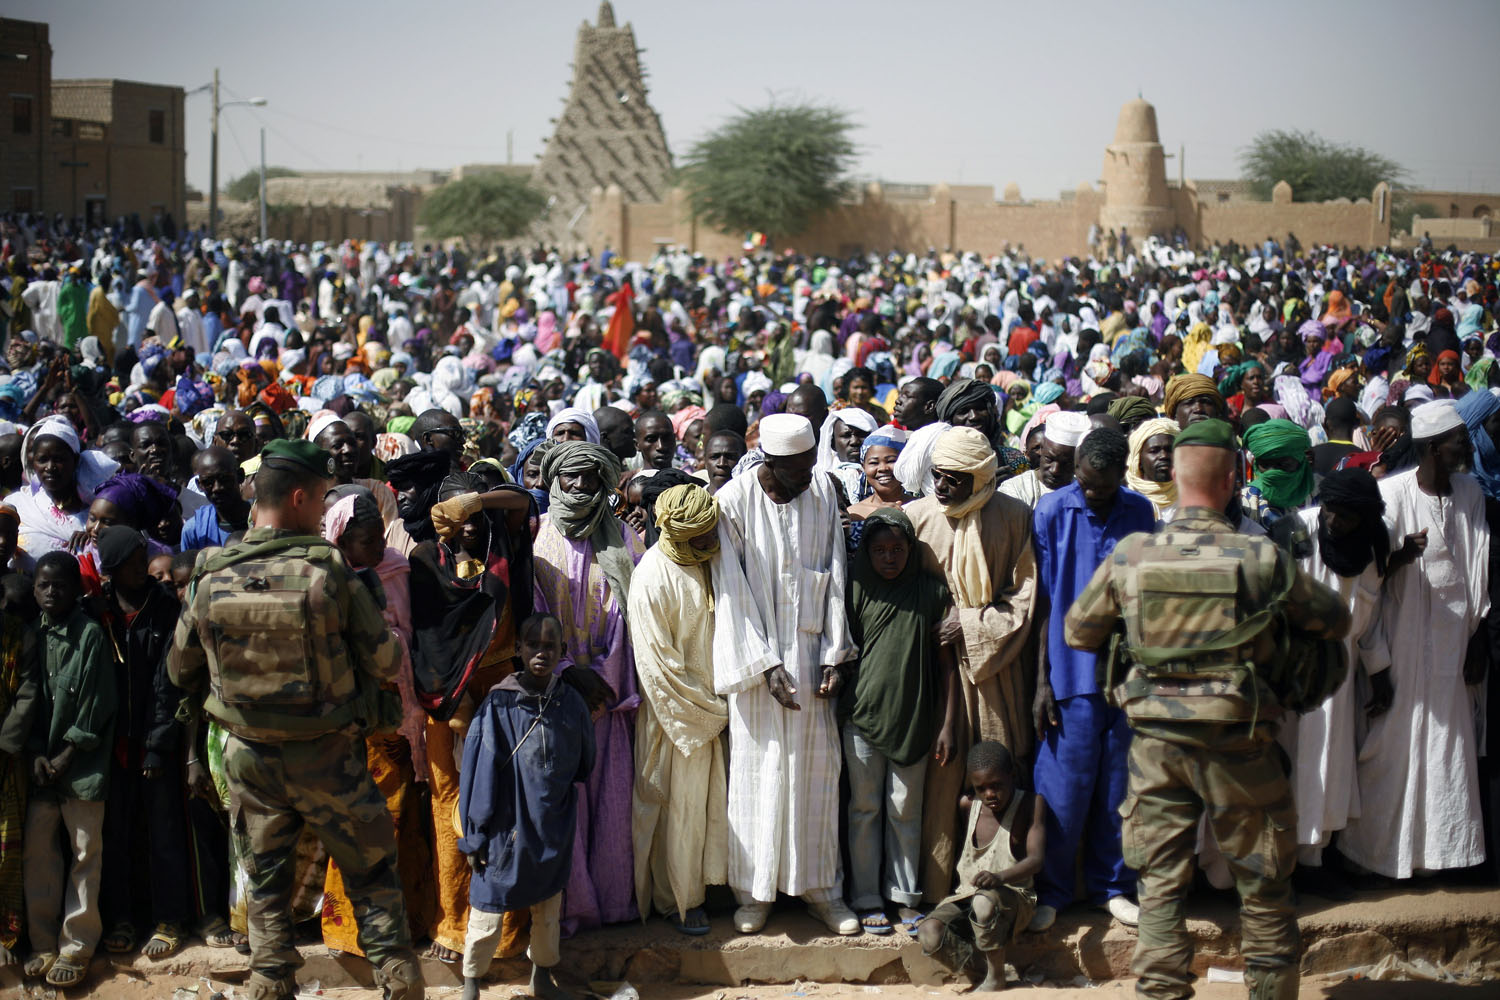 Well-wishers gather to greet French President Francois Hollande during his two-hour-long visit to Timbuktu, Feb. 2, 2013.